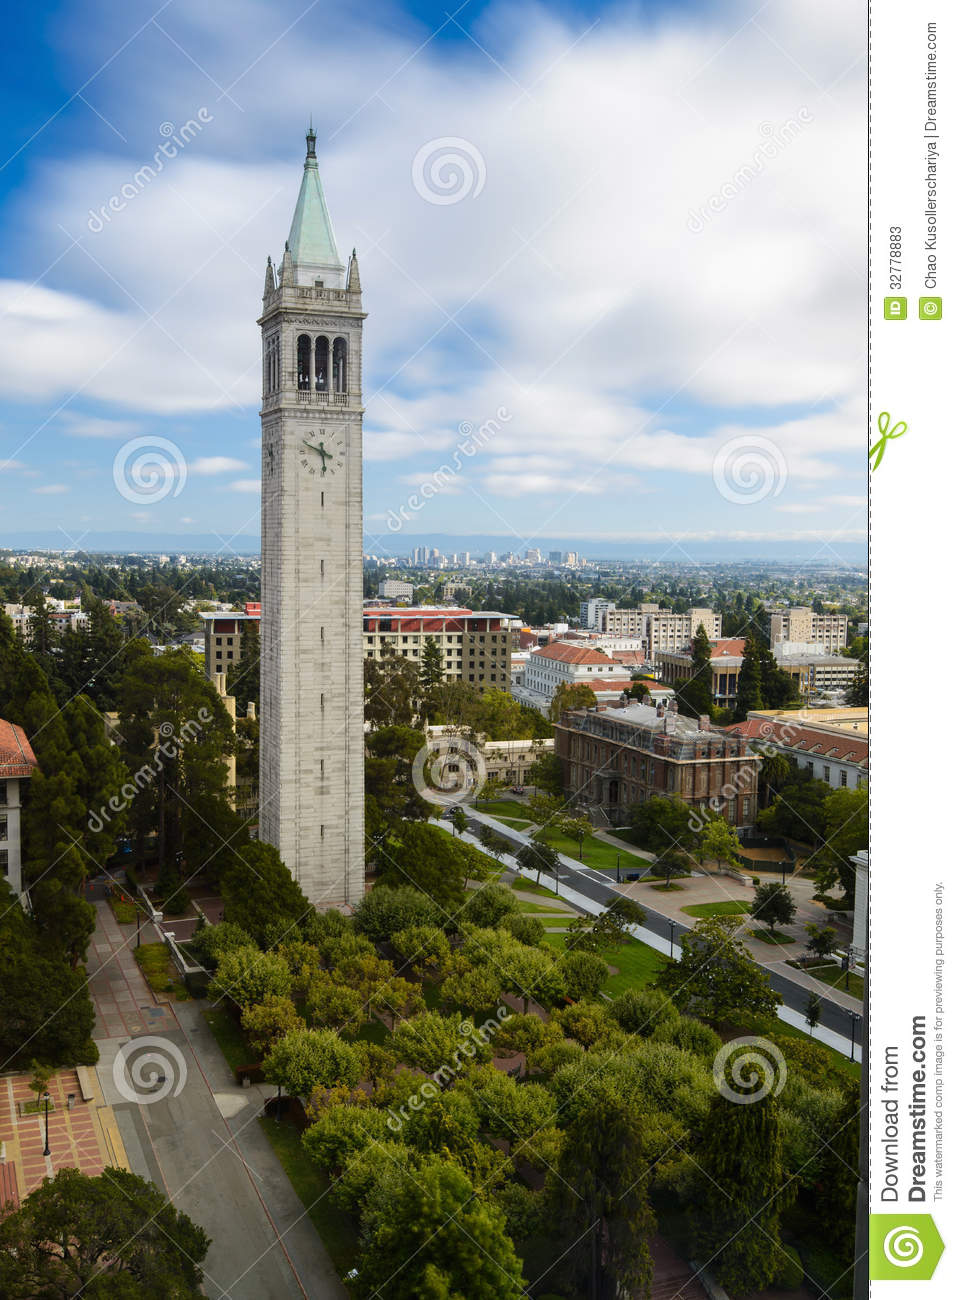 Oakland University Map >> UC Berkeley Campanile Esplanade Stock Photos - Image: 32778883